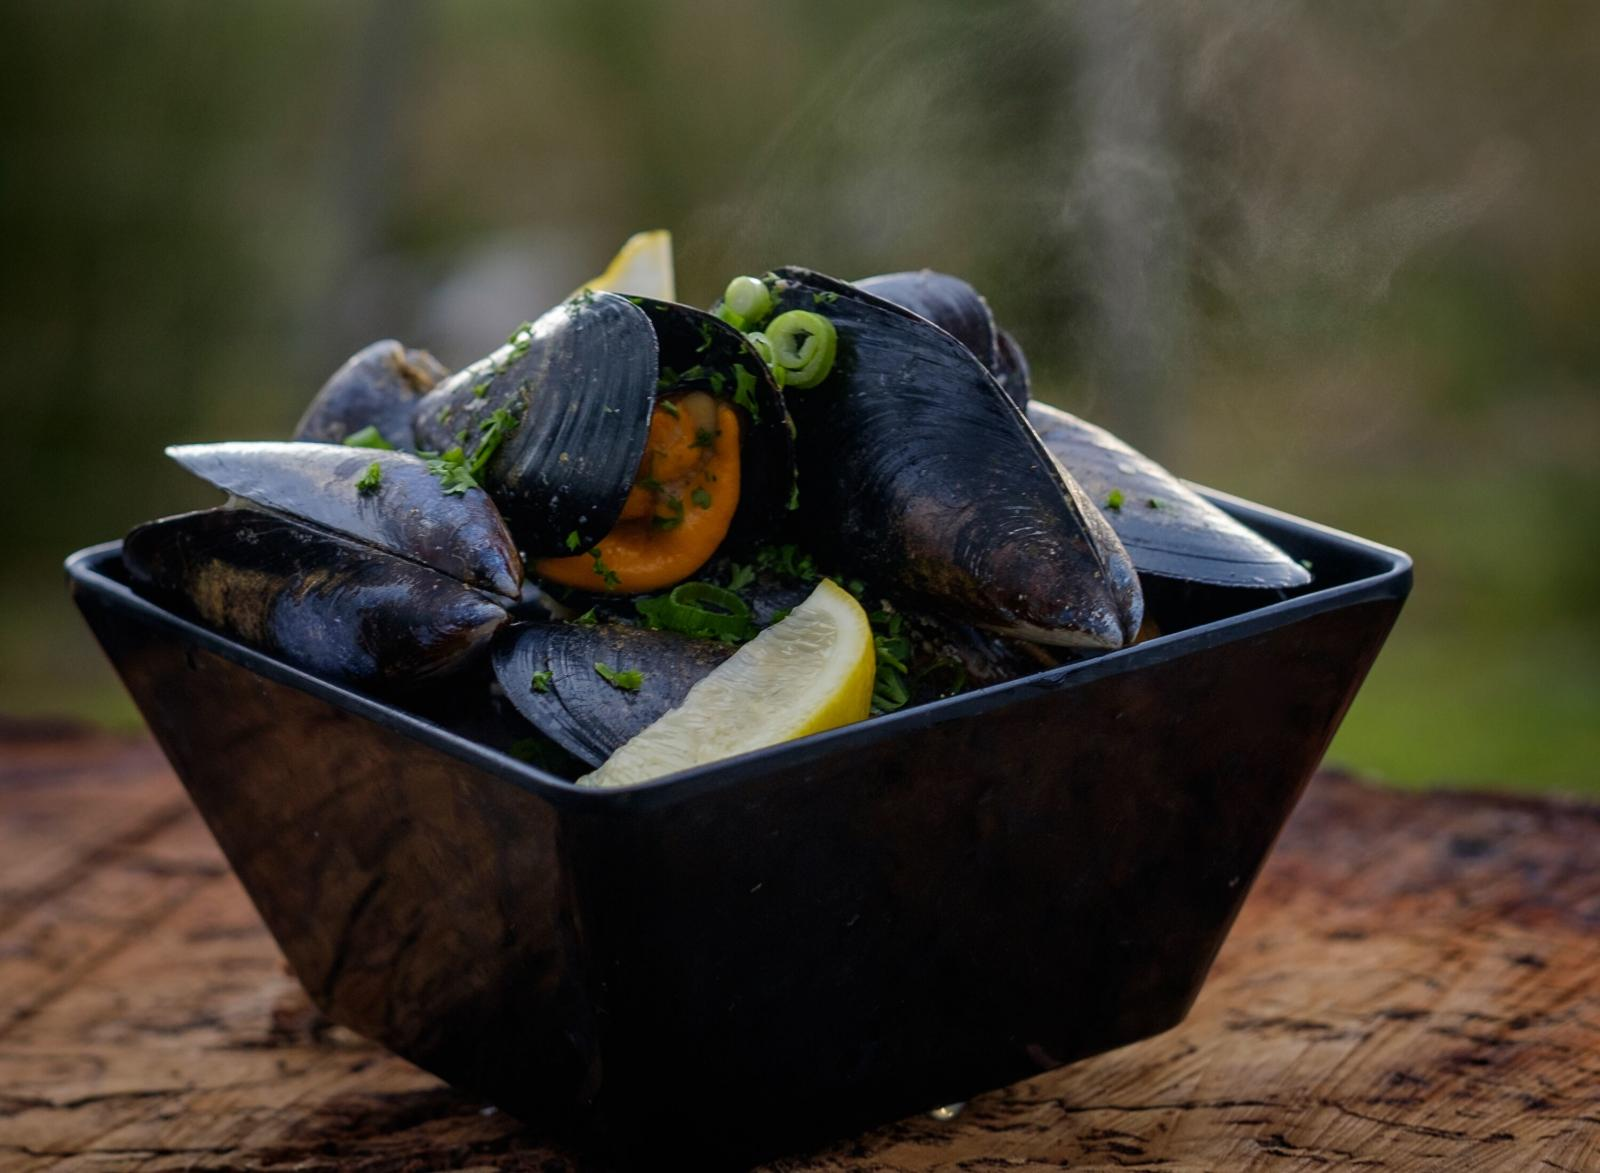 A steaming bowl of fresh mussels.